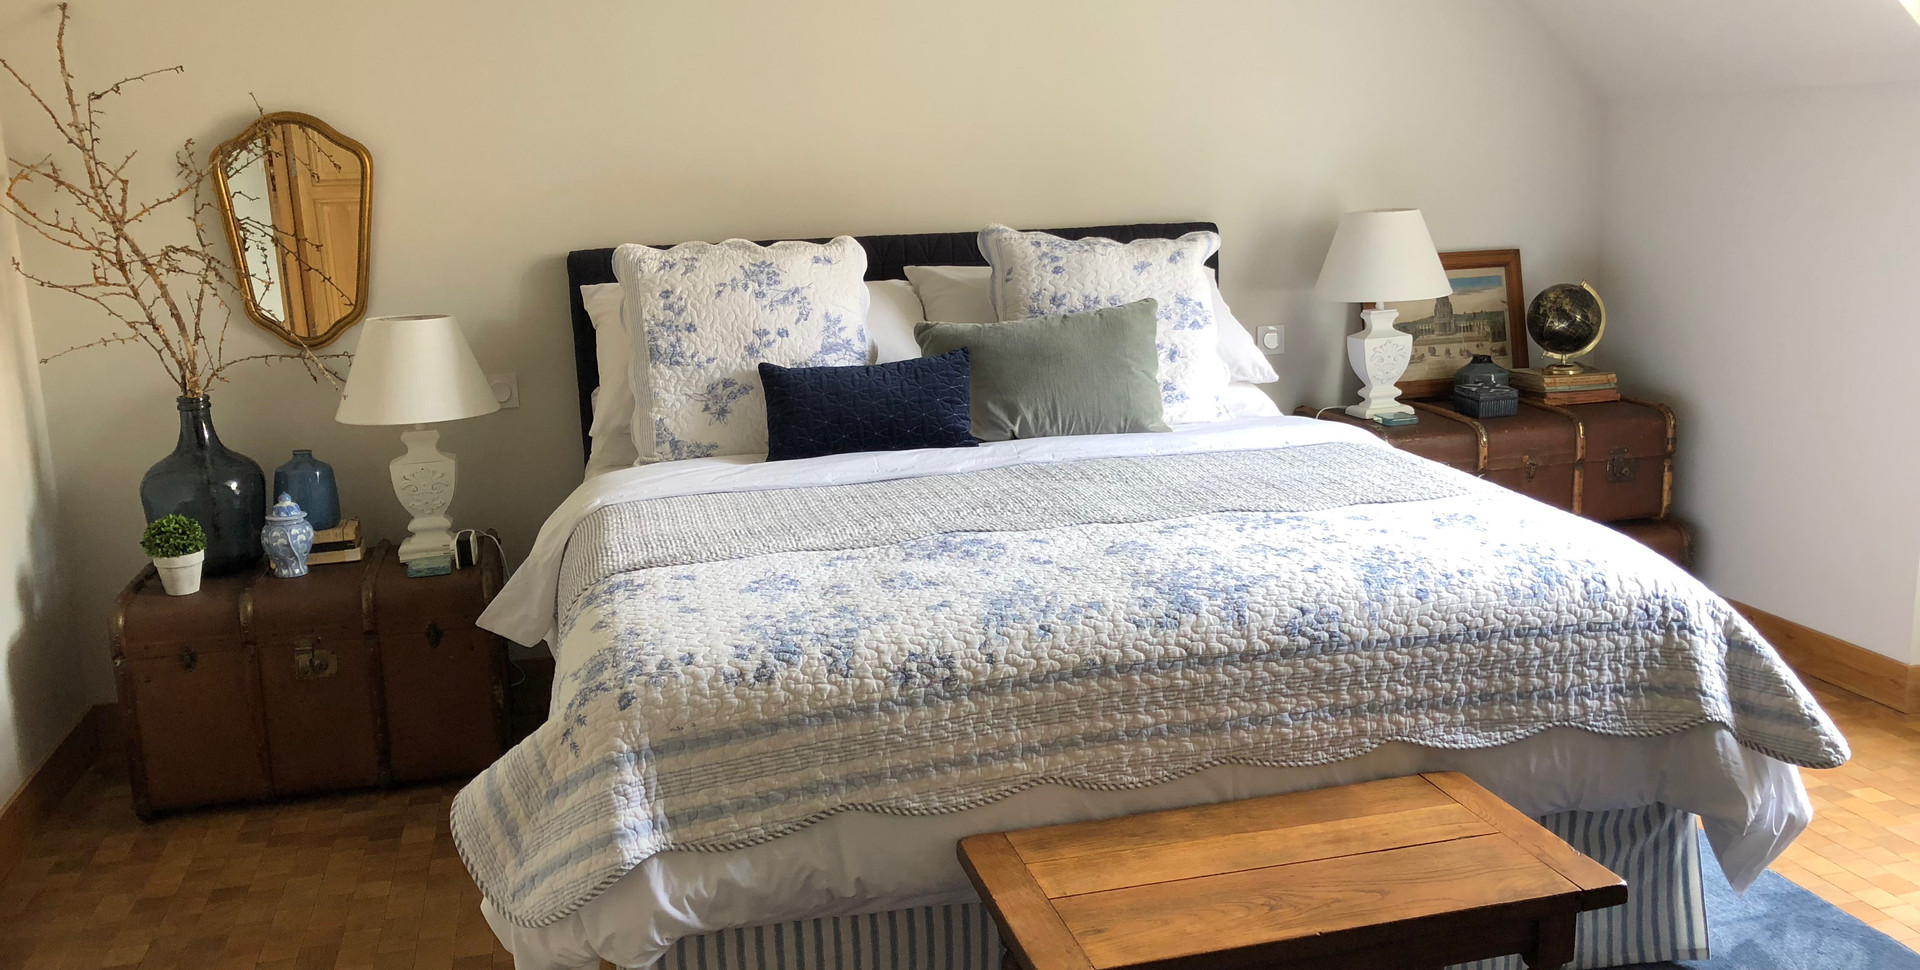 Image 4 GH Bedroom.JPG